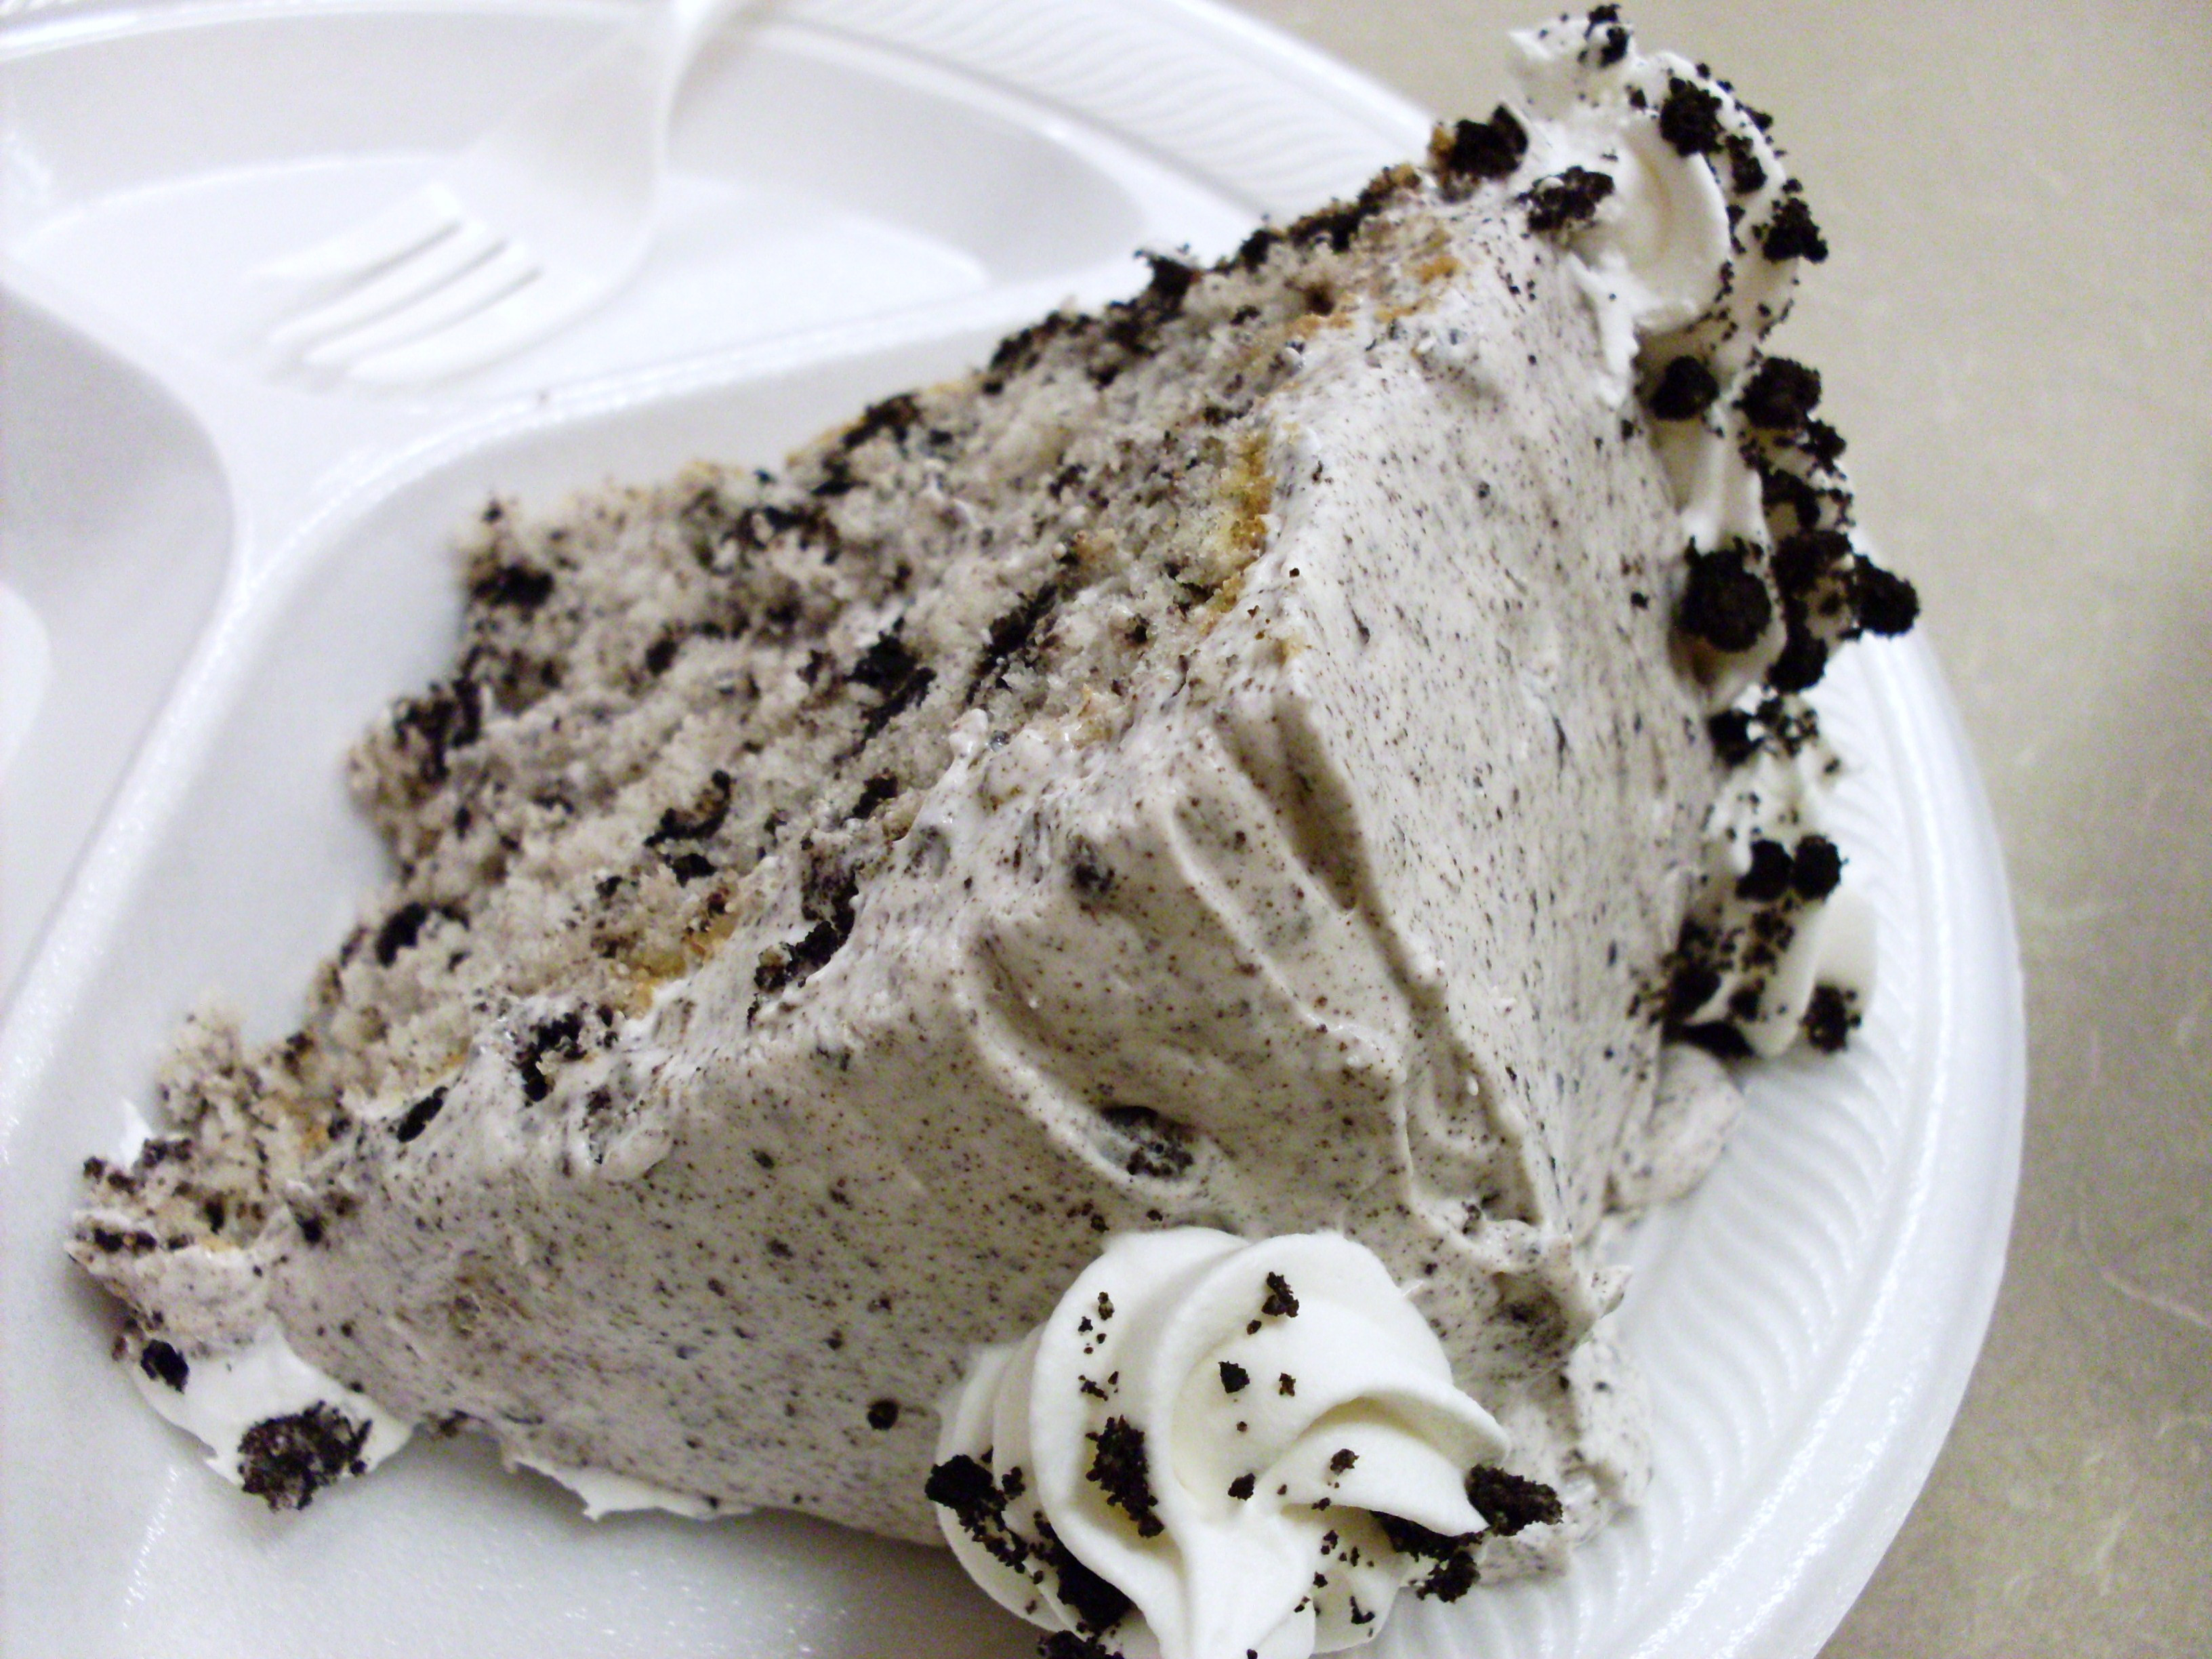 Oreo Cake Recipe  The Better Baker Guest Post Veronica s Cornucopia Oreo